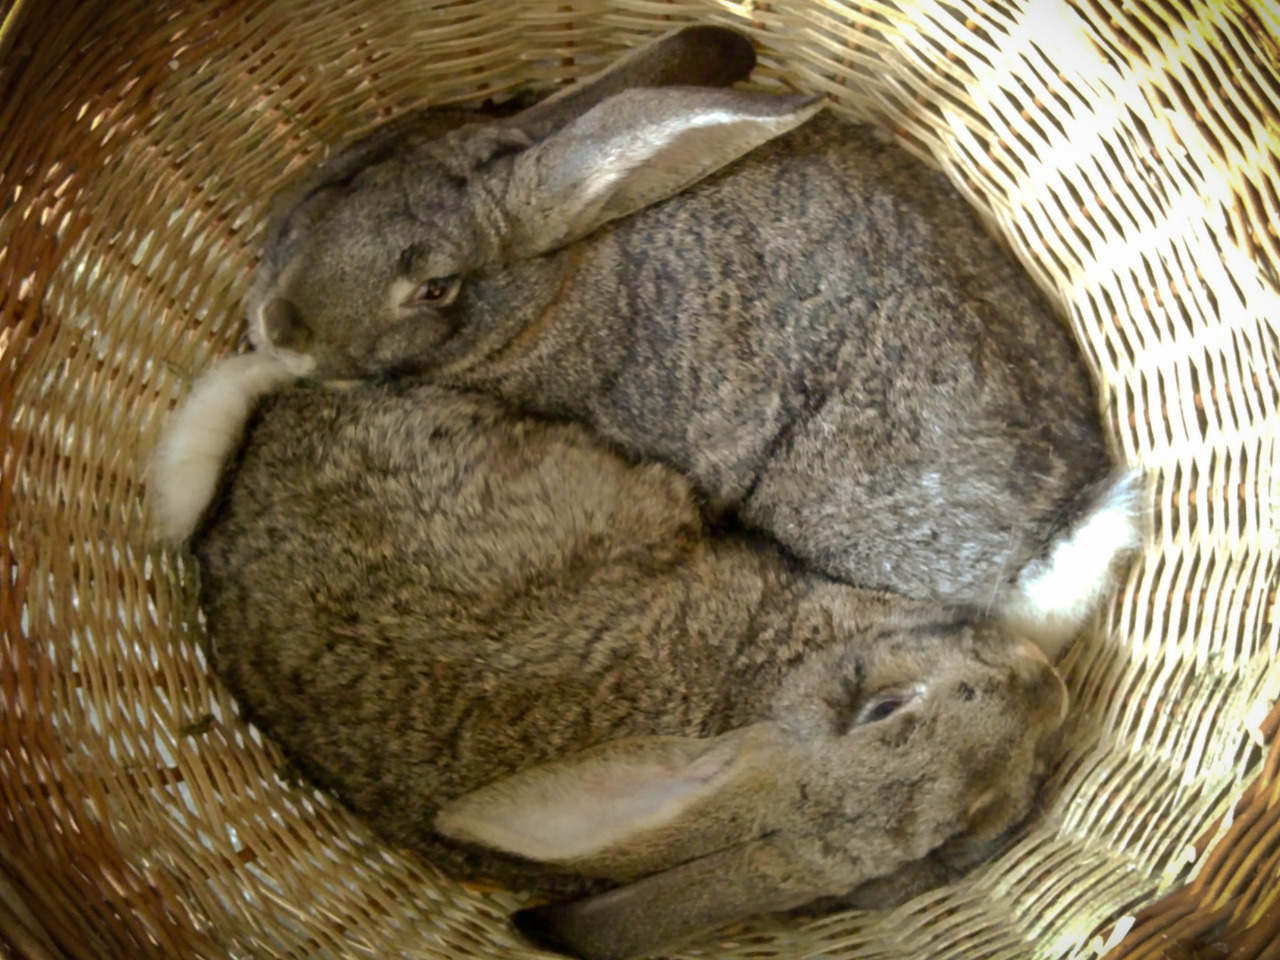 Two rabbits snuggling in a basket. Just how awesome is that ?